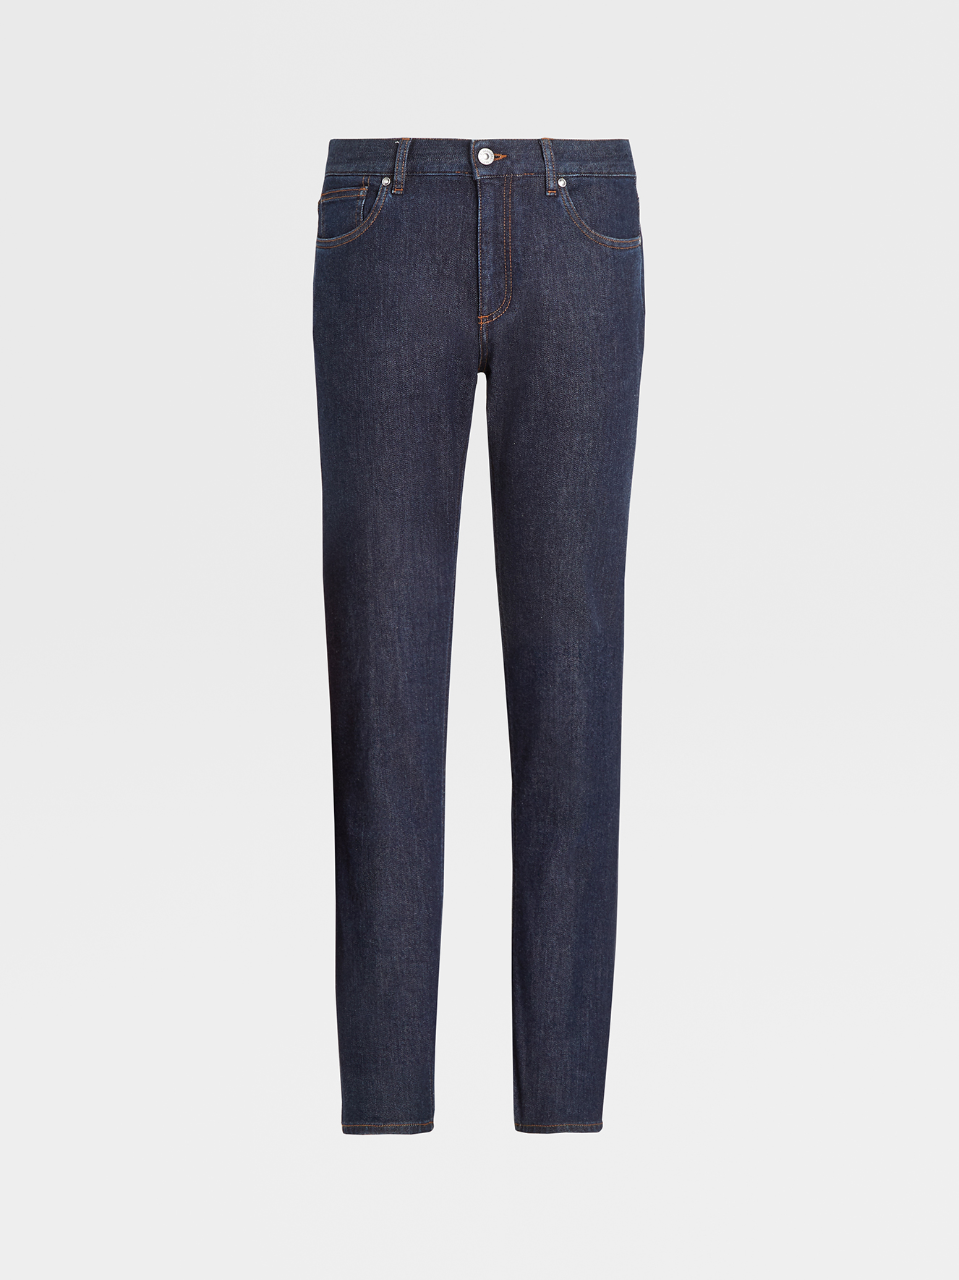 Cotton Stretch Denim